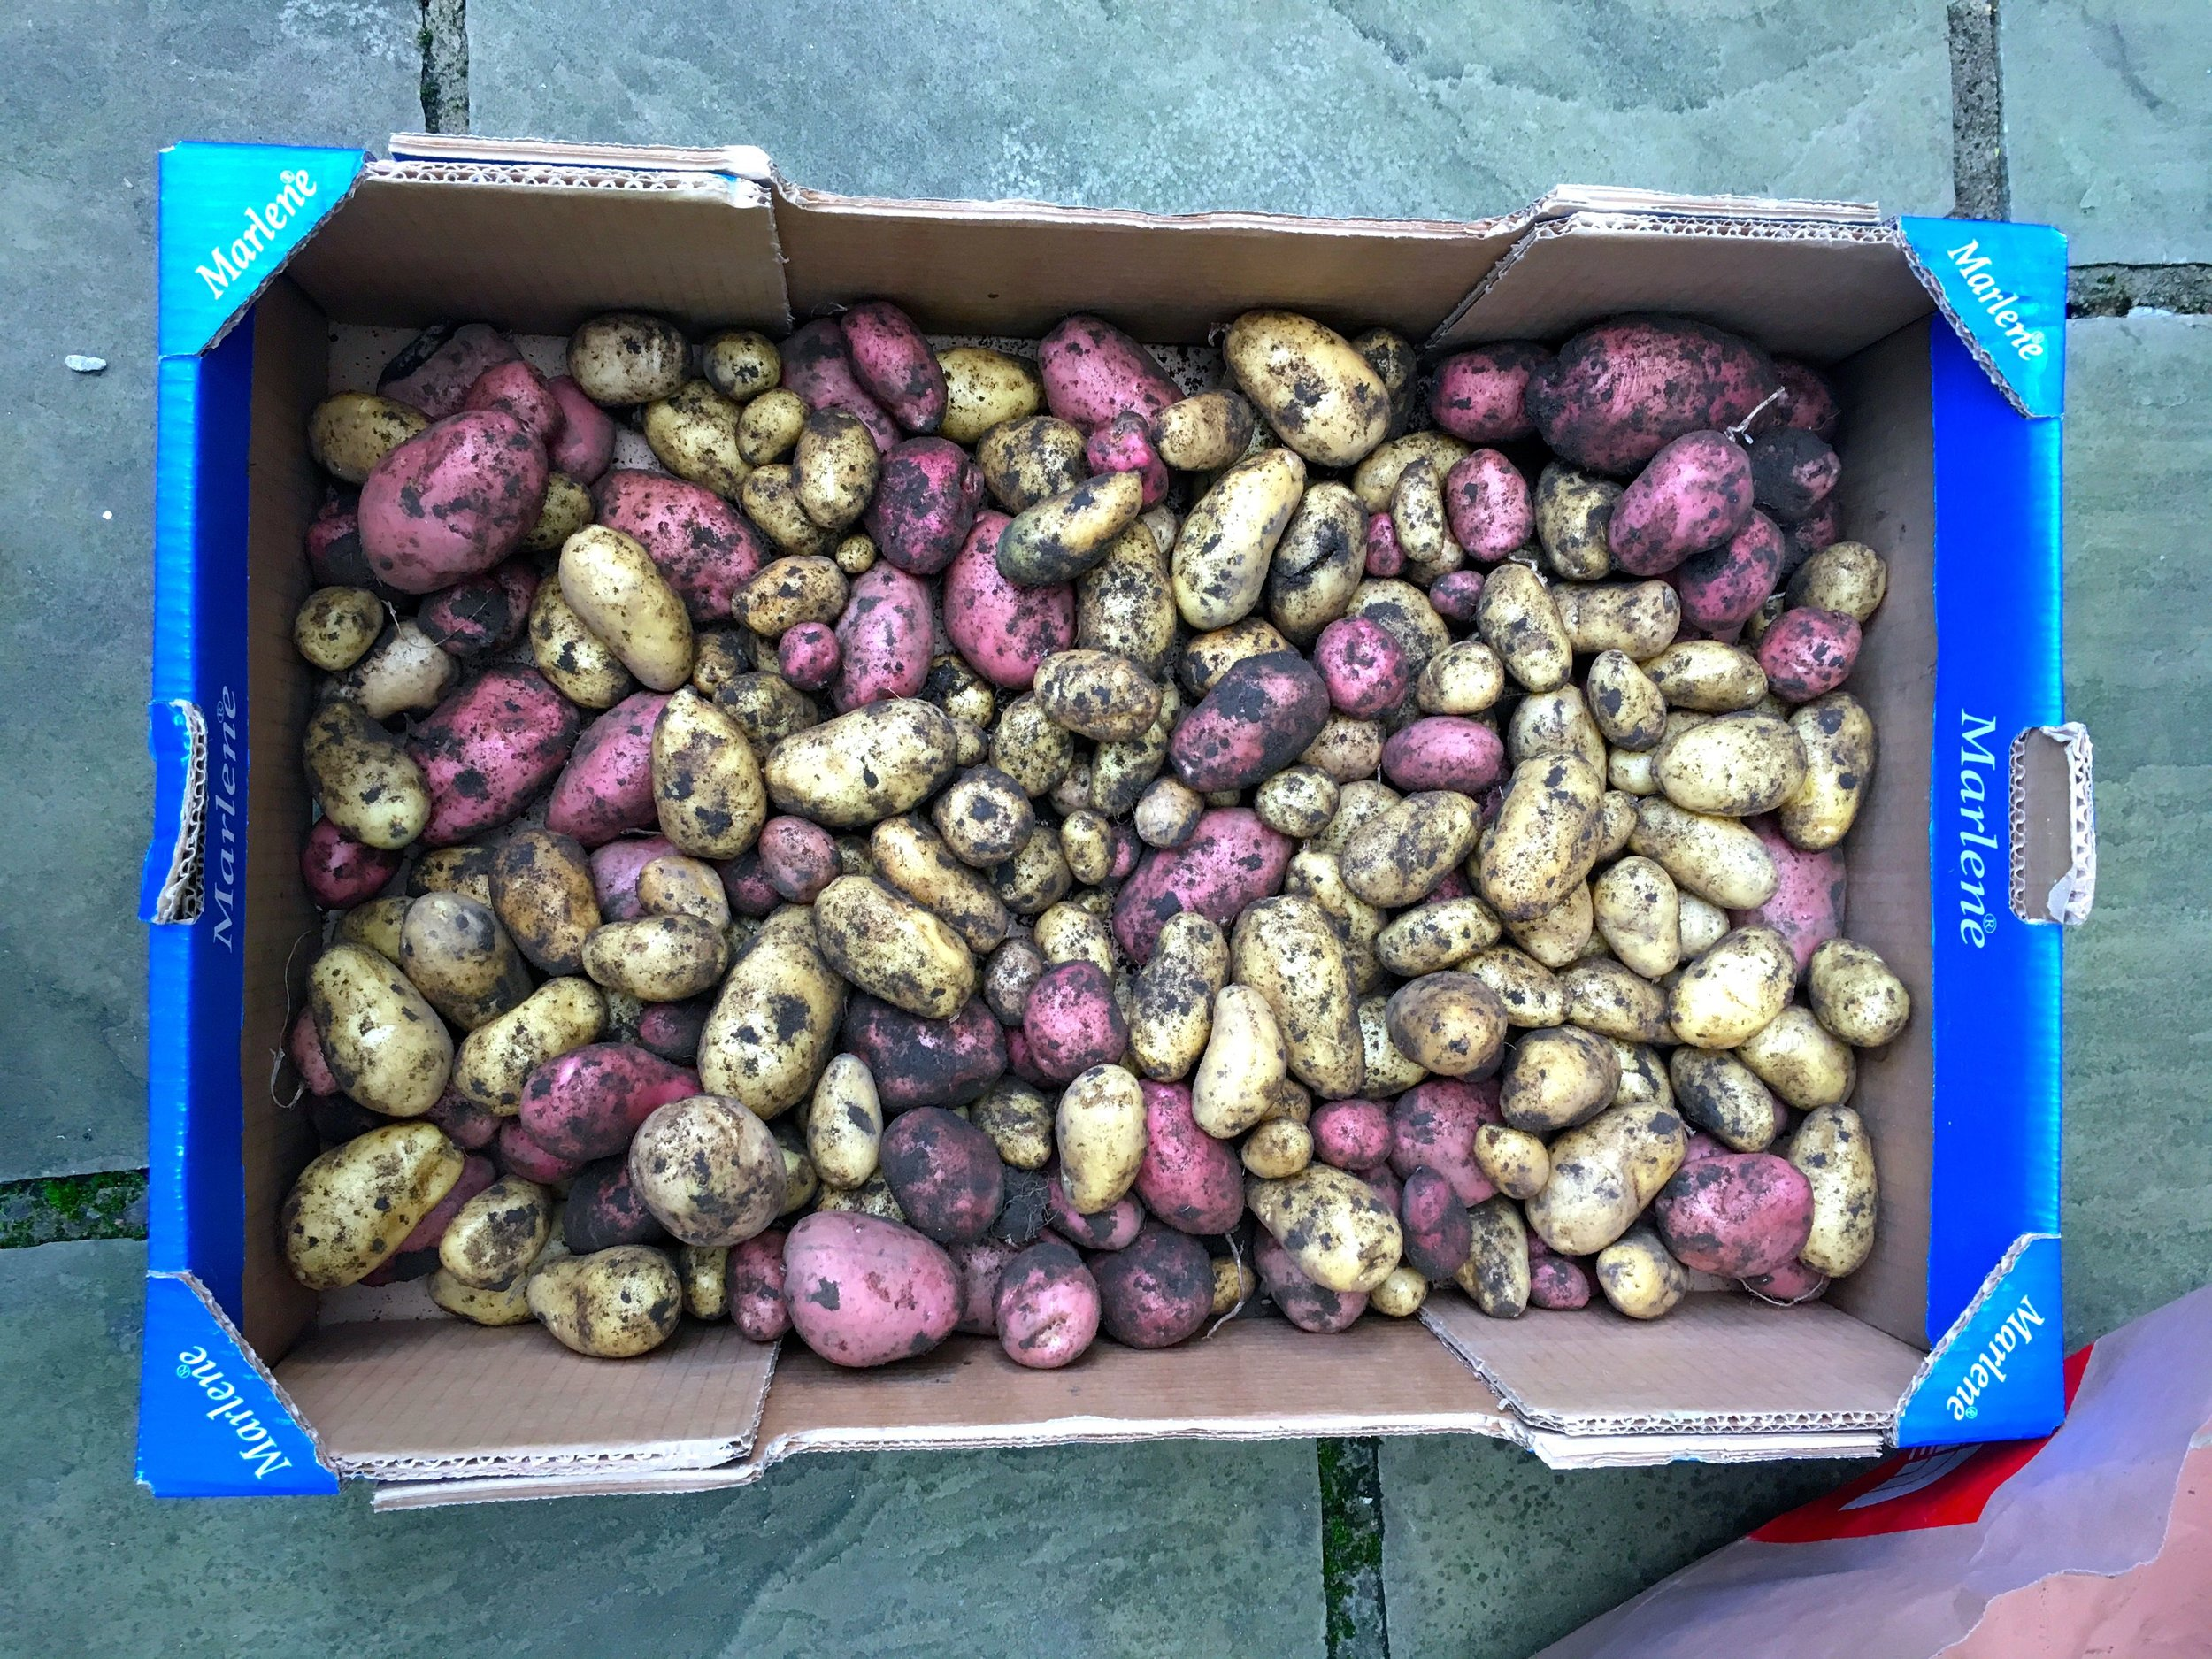 Back home I checked the potatoes again